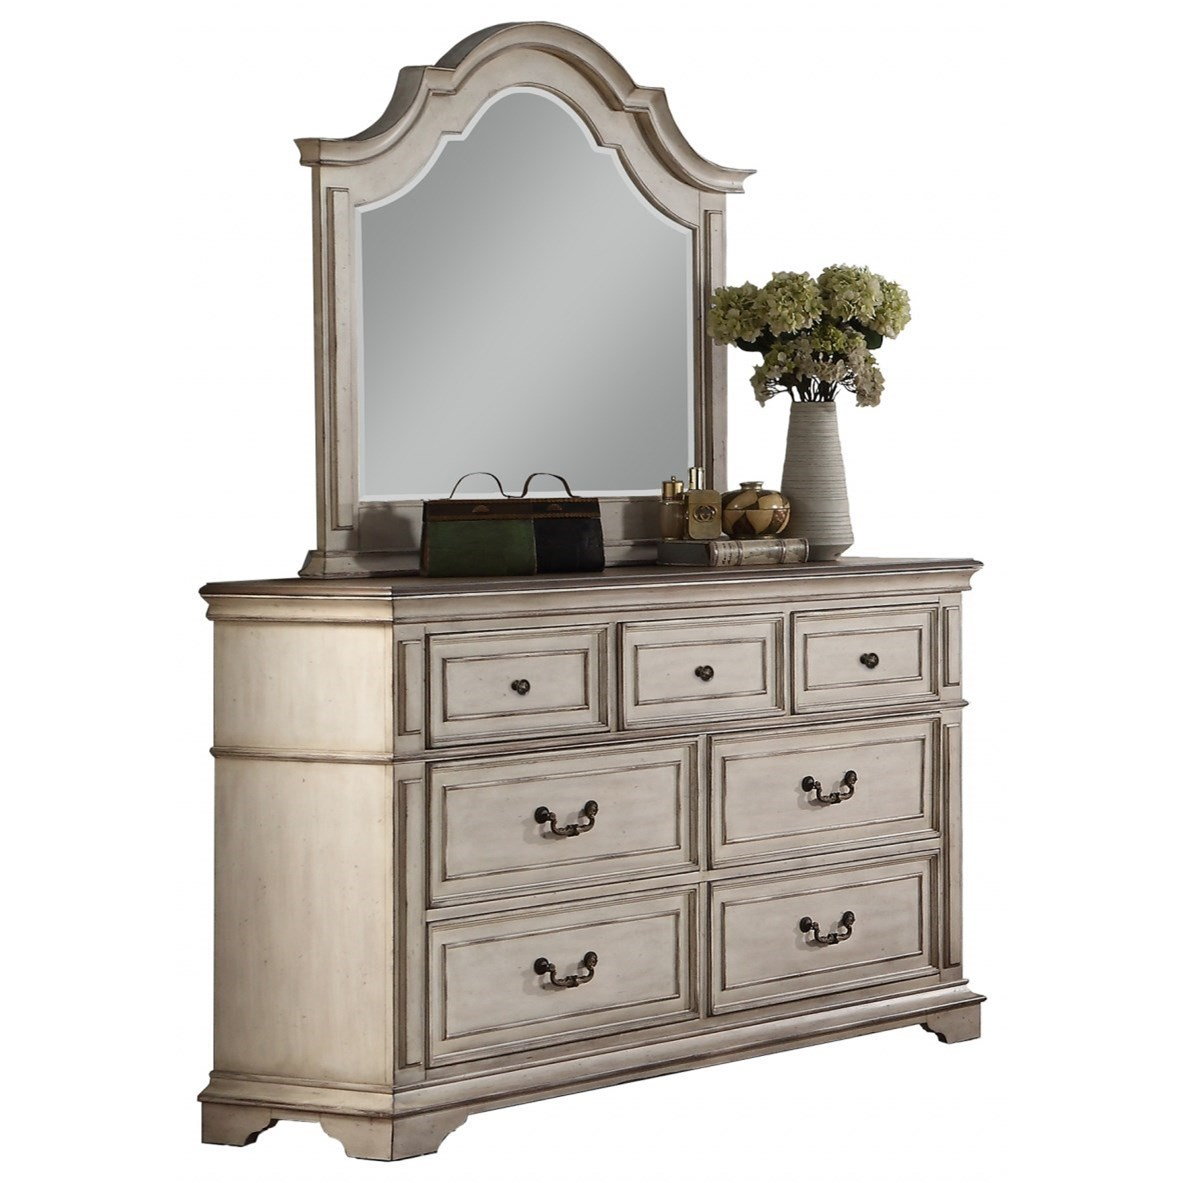 Anastasia Dresser and Mirror Set by New Classic at Rife's Home Furniture